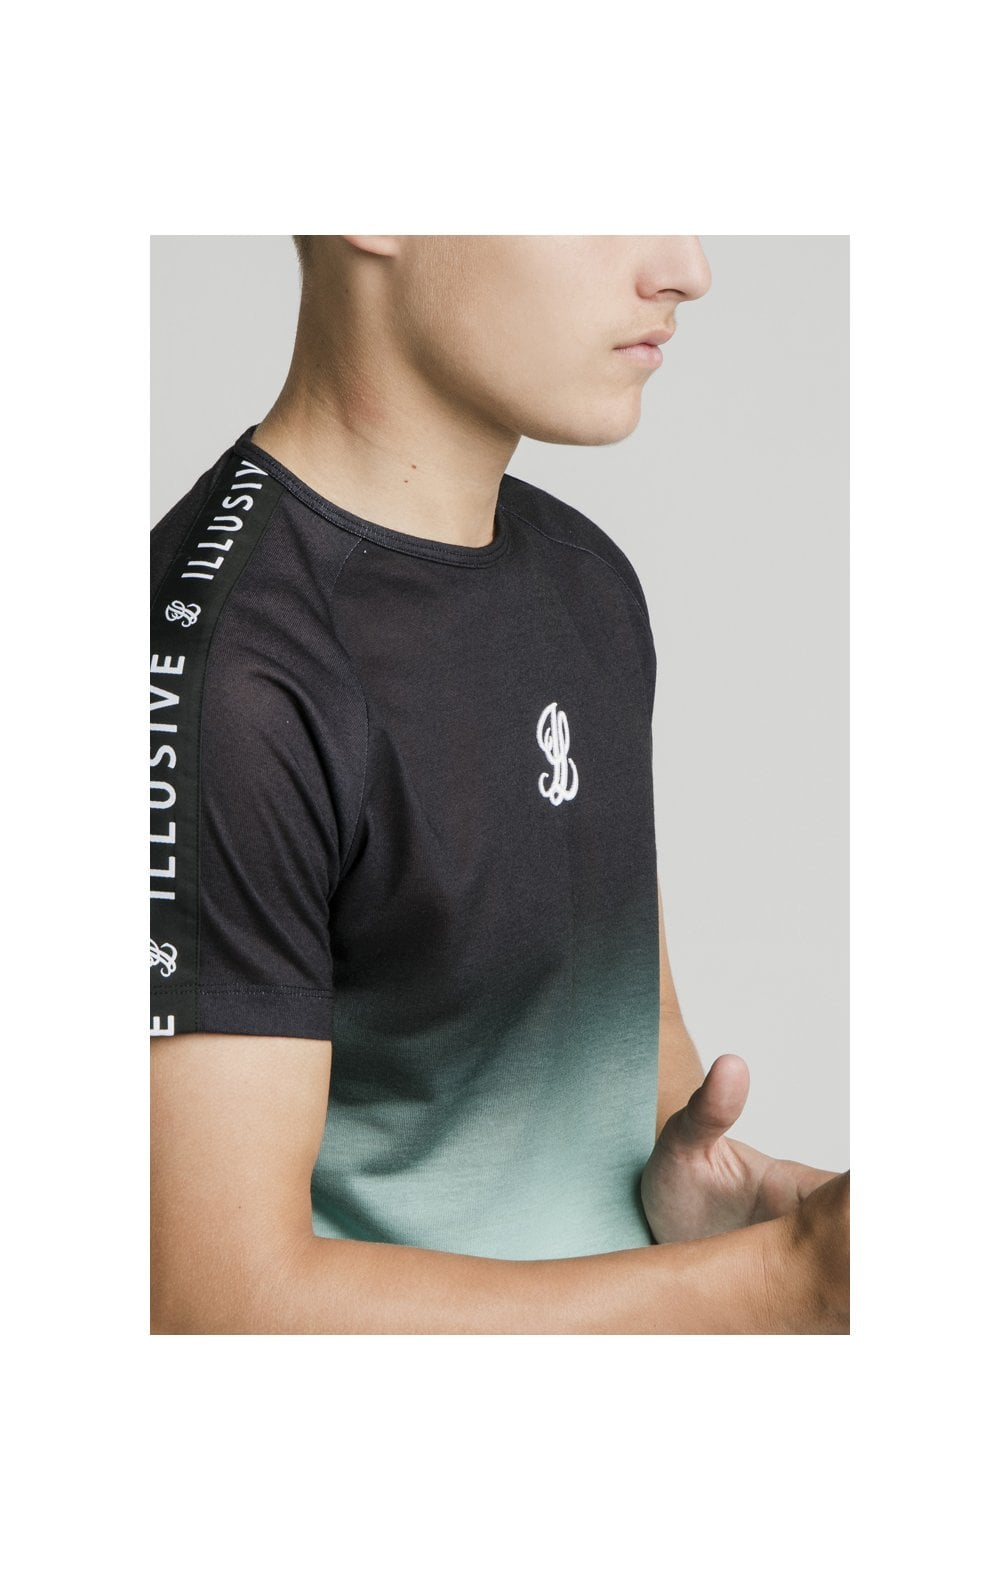 Illusive London Tape Fade Logo Tee - Black & Mint (2)